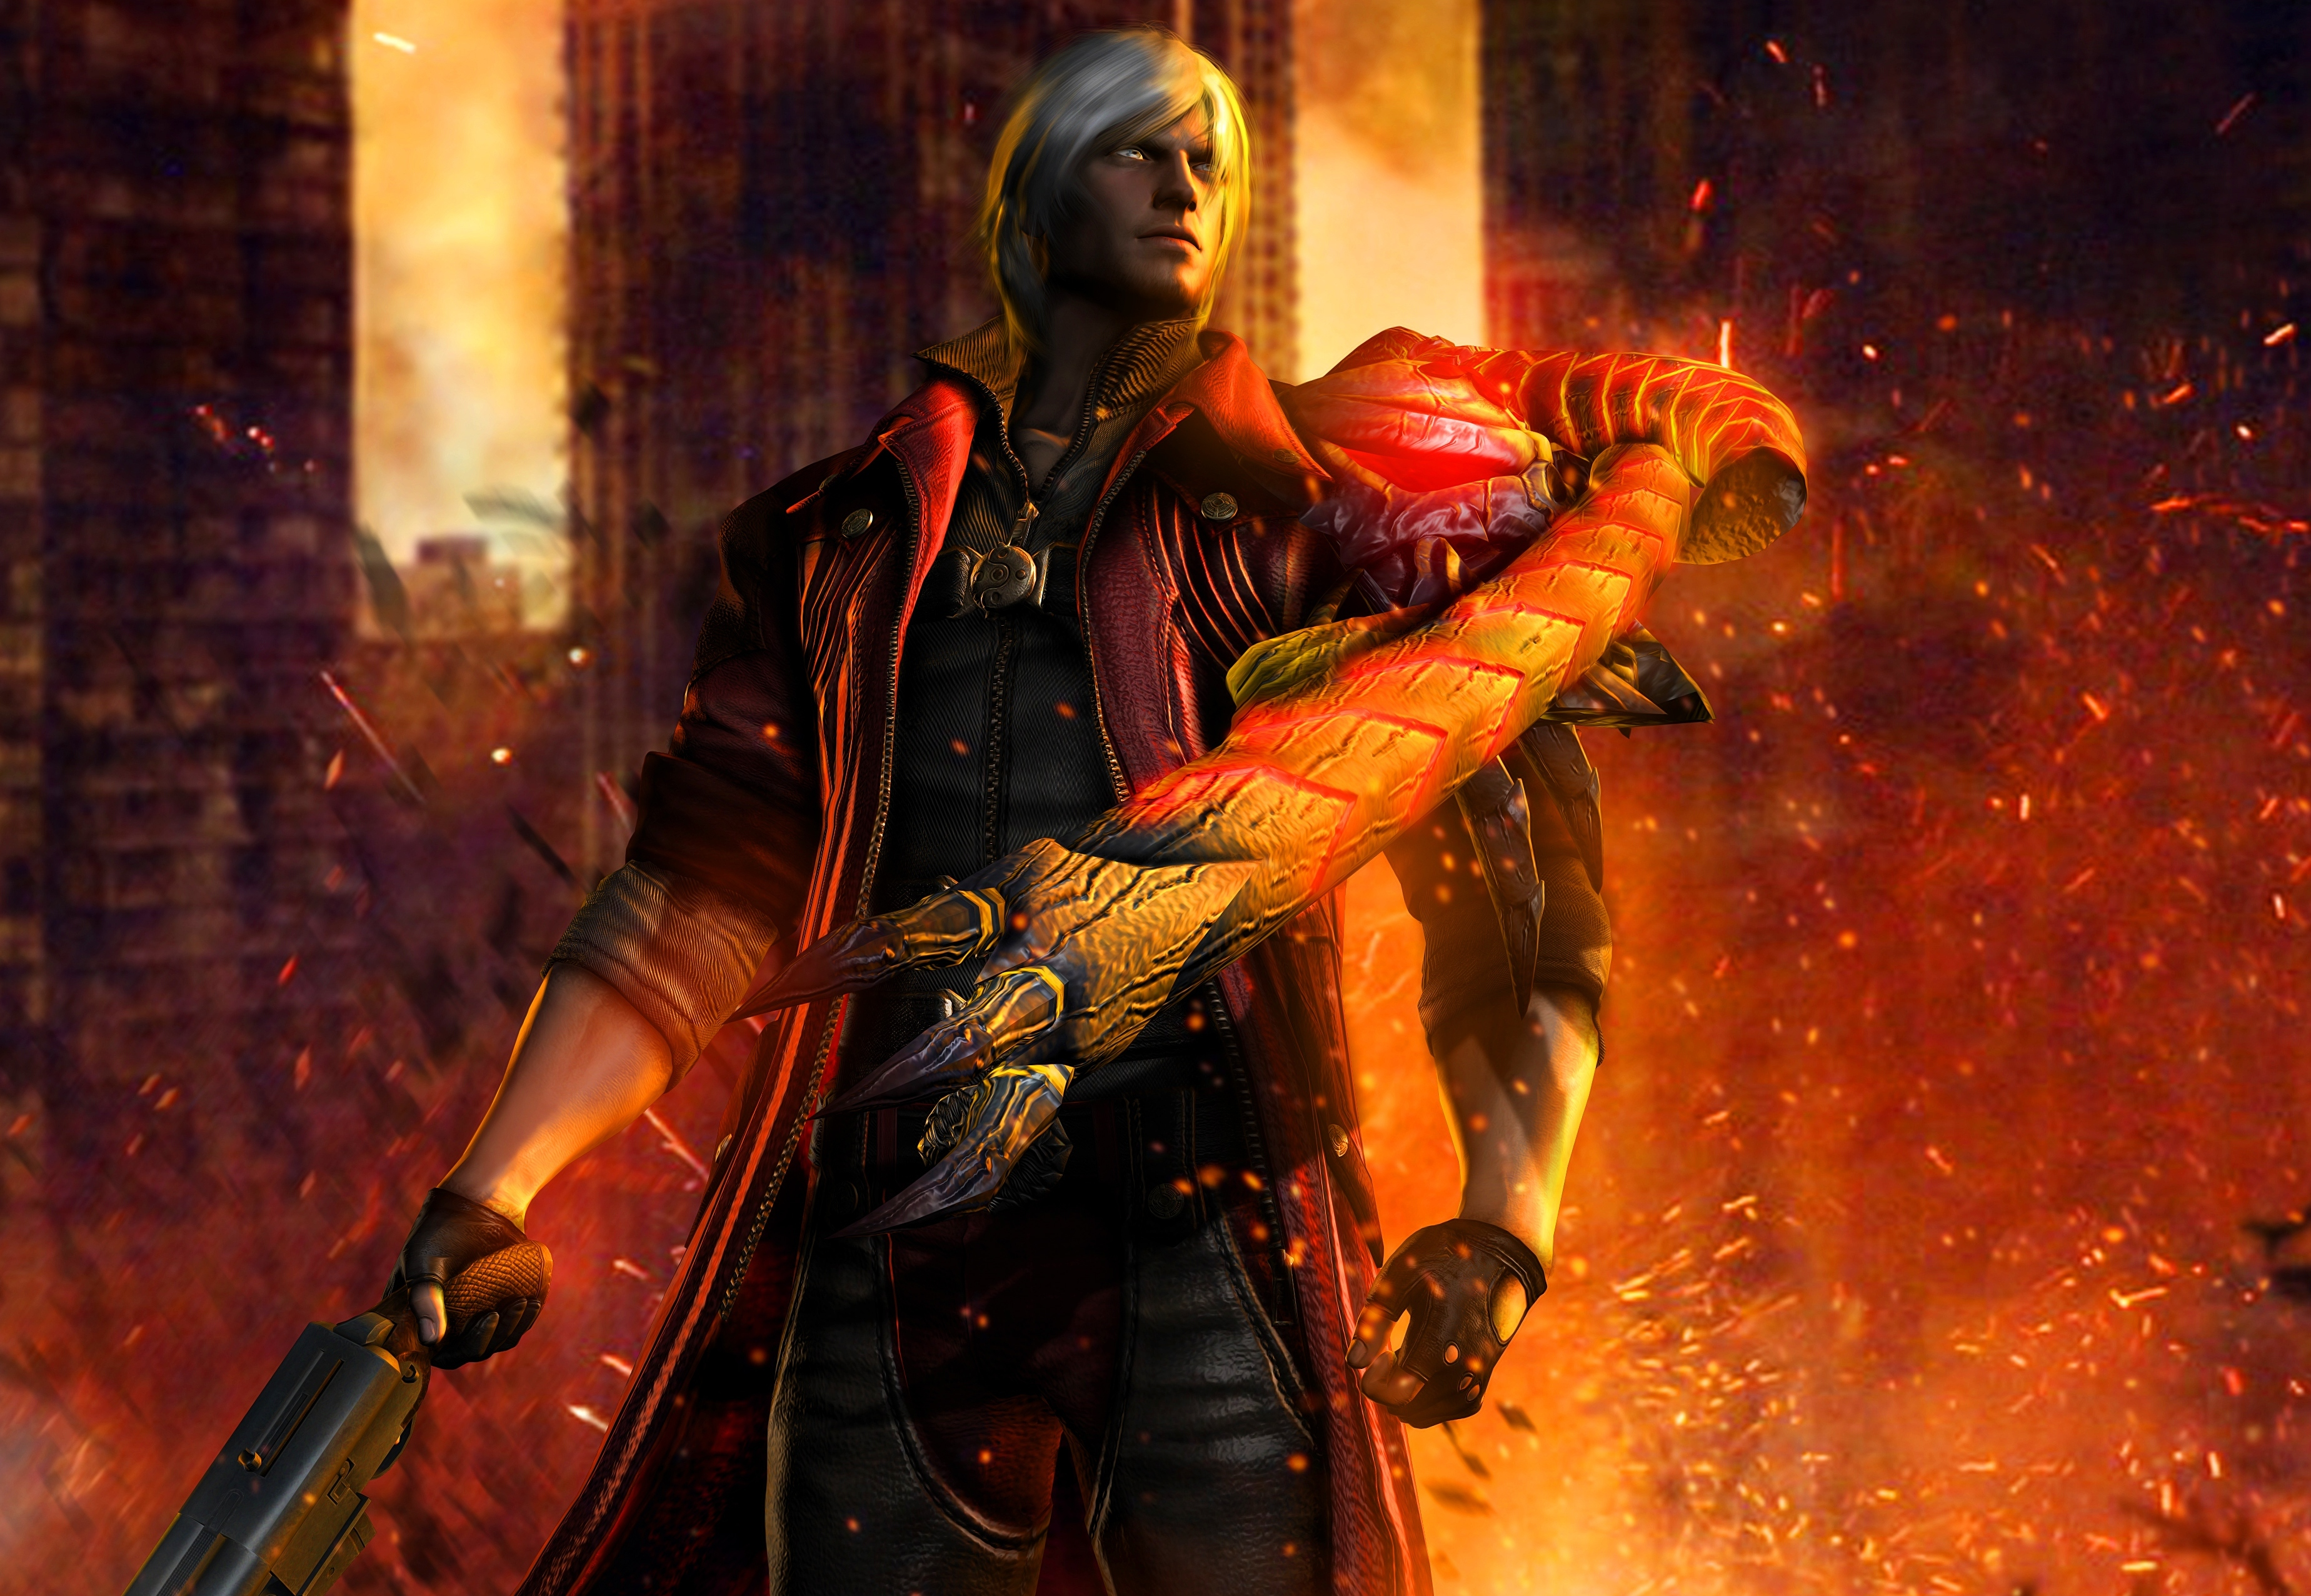 Devil May Cry 4 Wallpapers, Pictures, Images